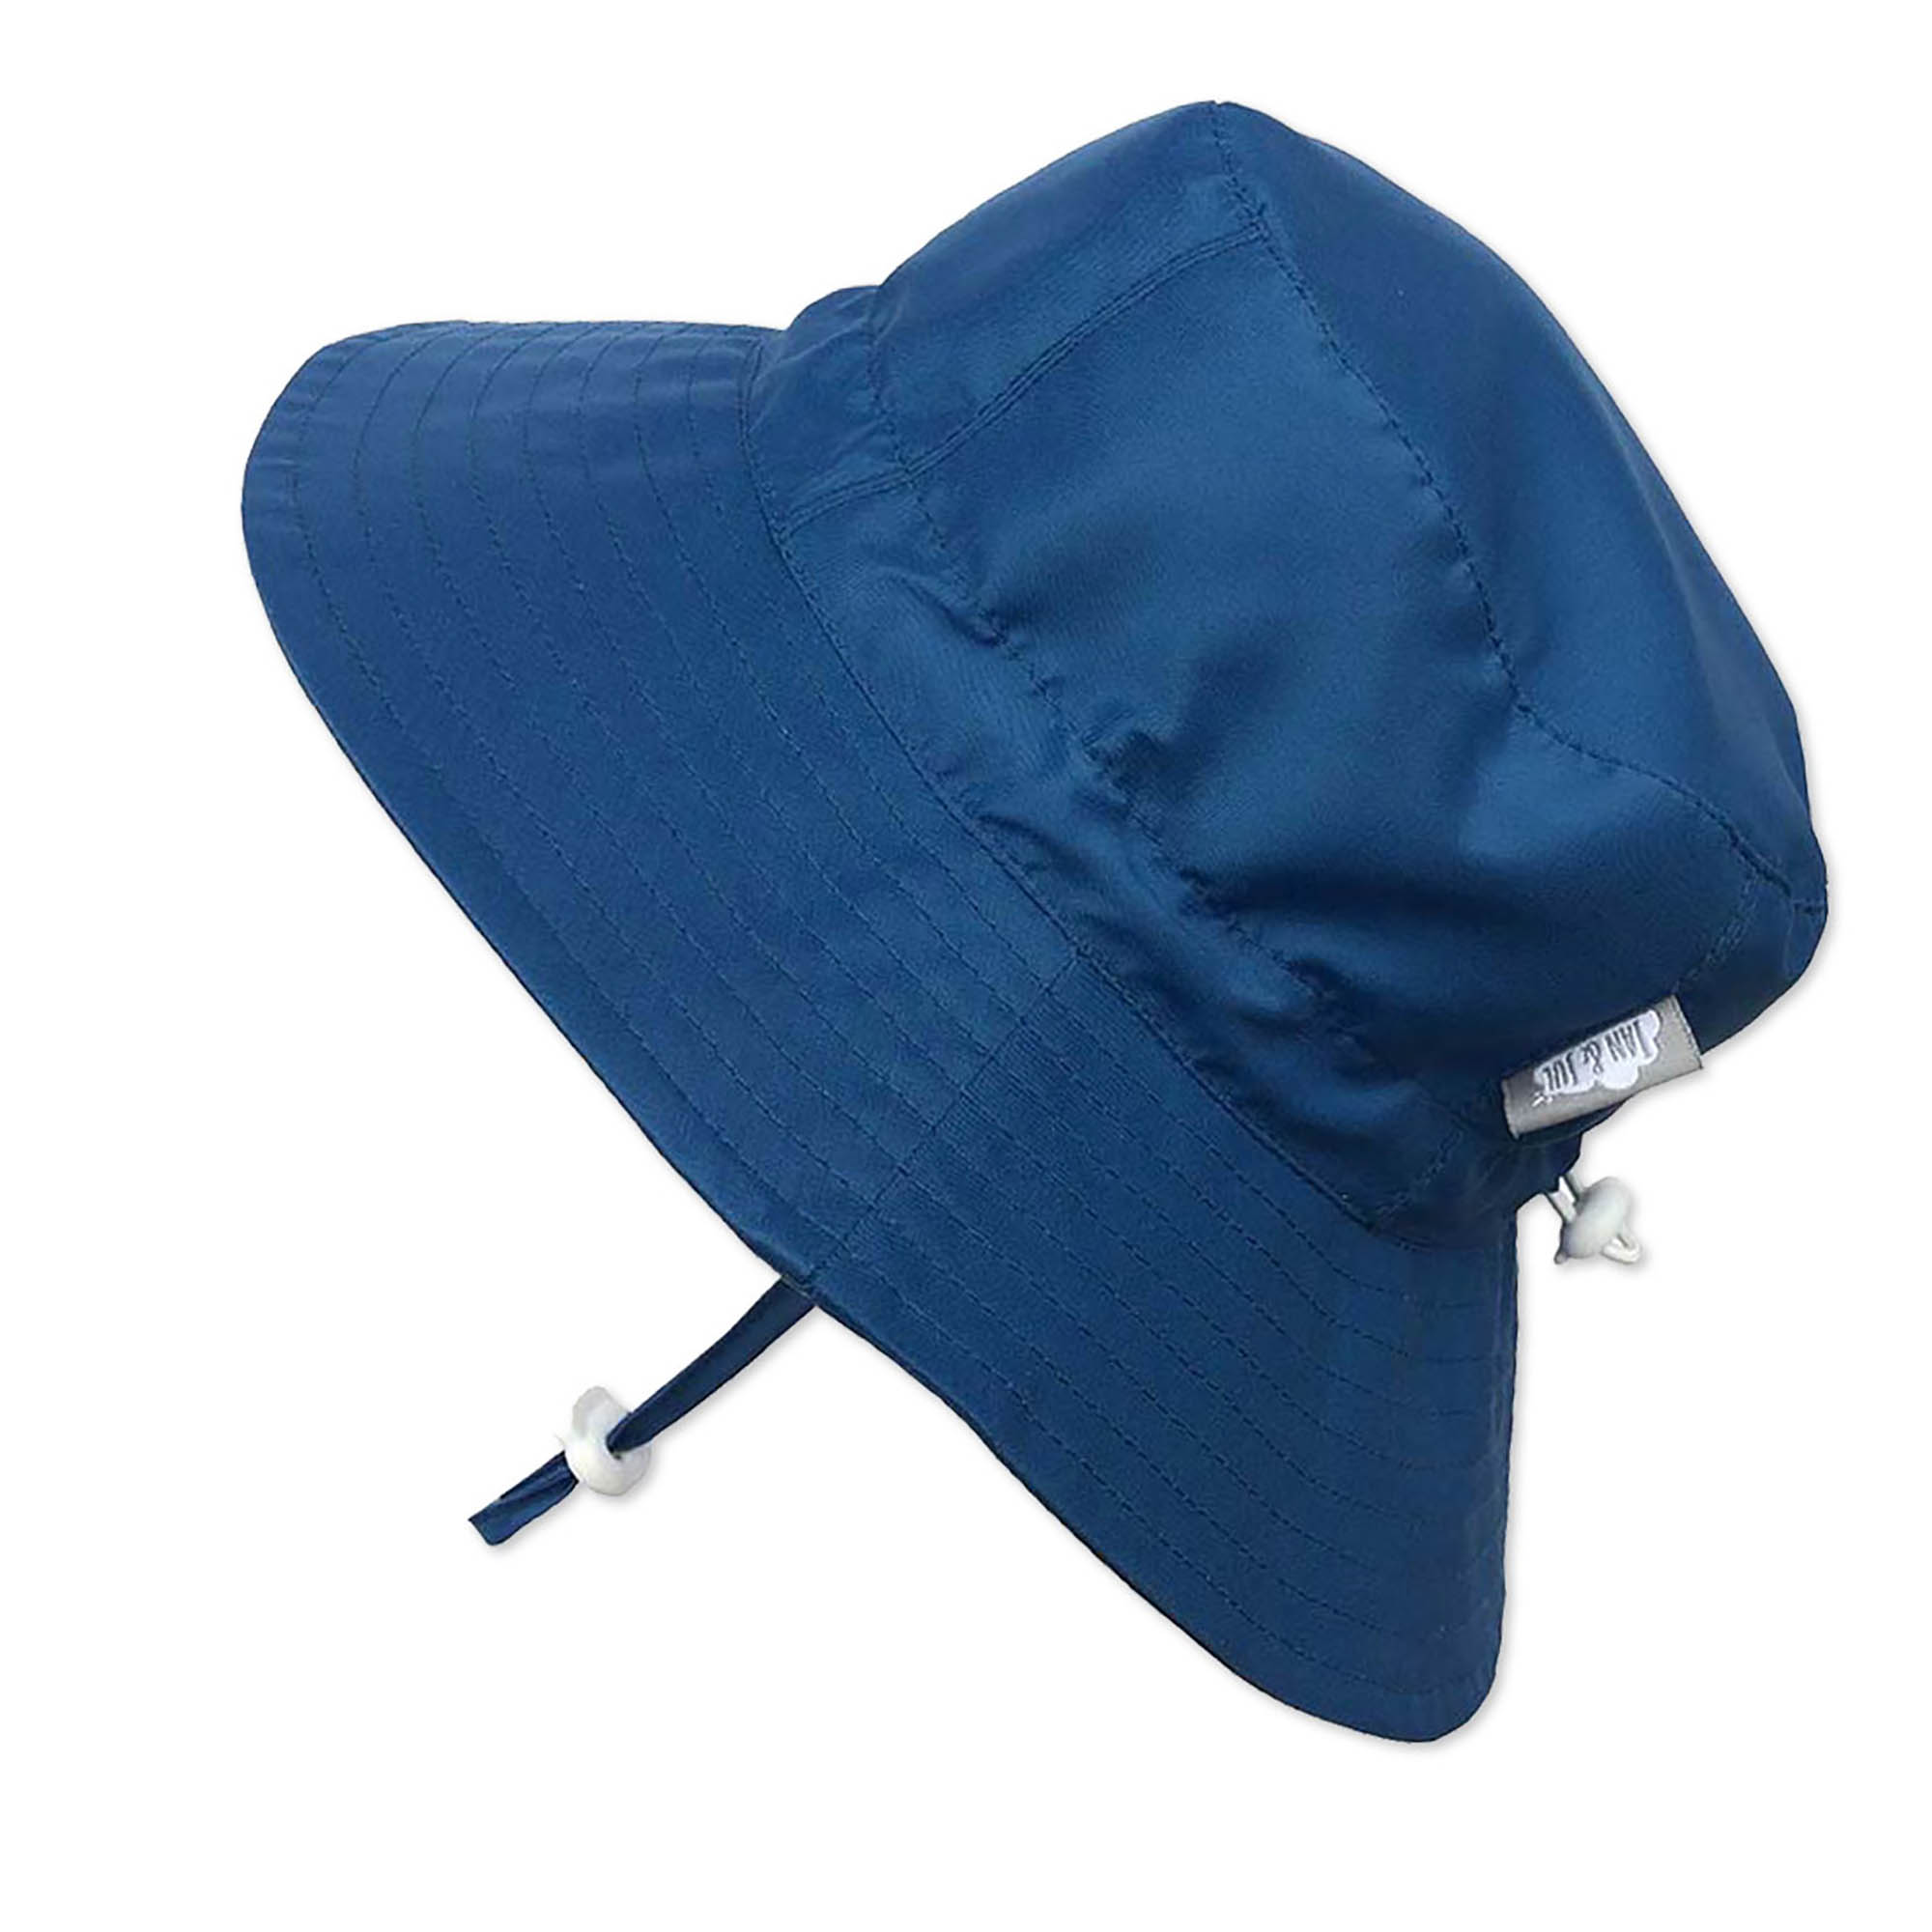 Happy Cherry Baby Bucket Hat Soft Cotton Sun Protection Fishman Cap with Chin Strap